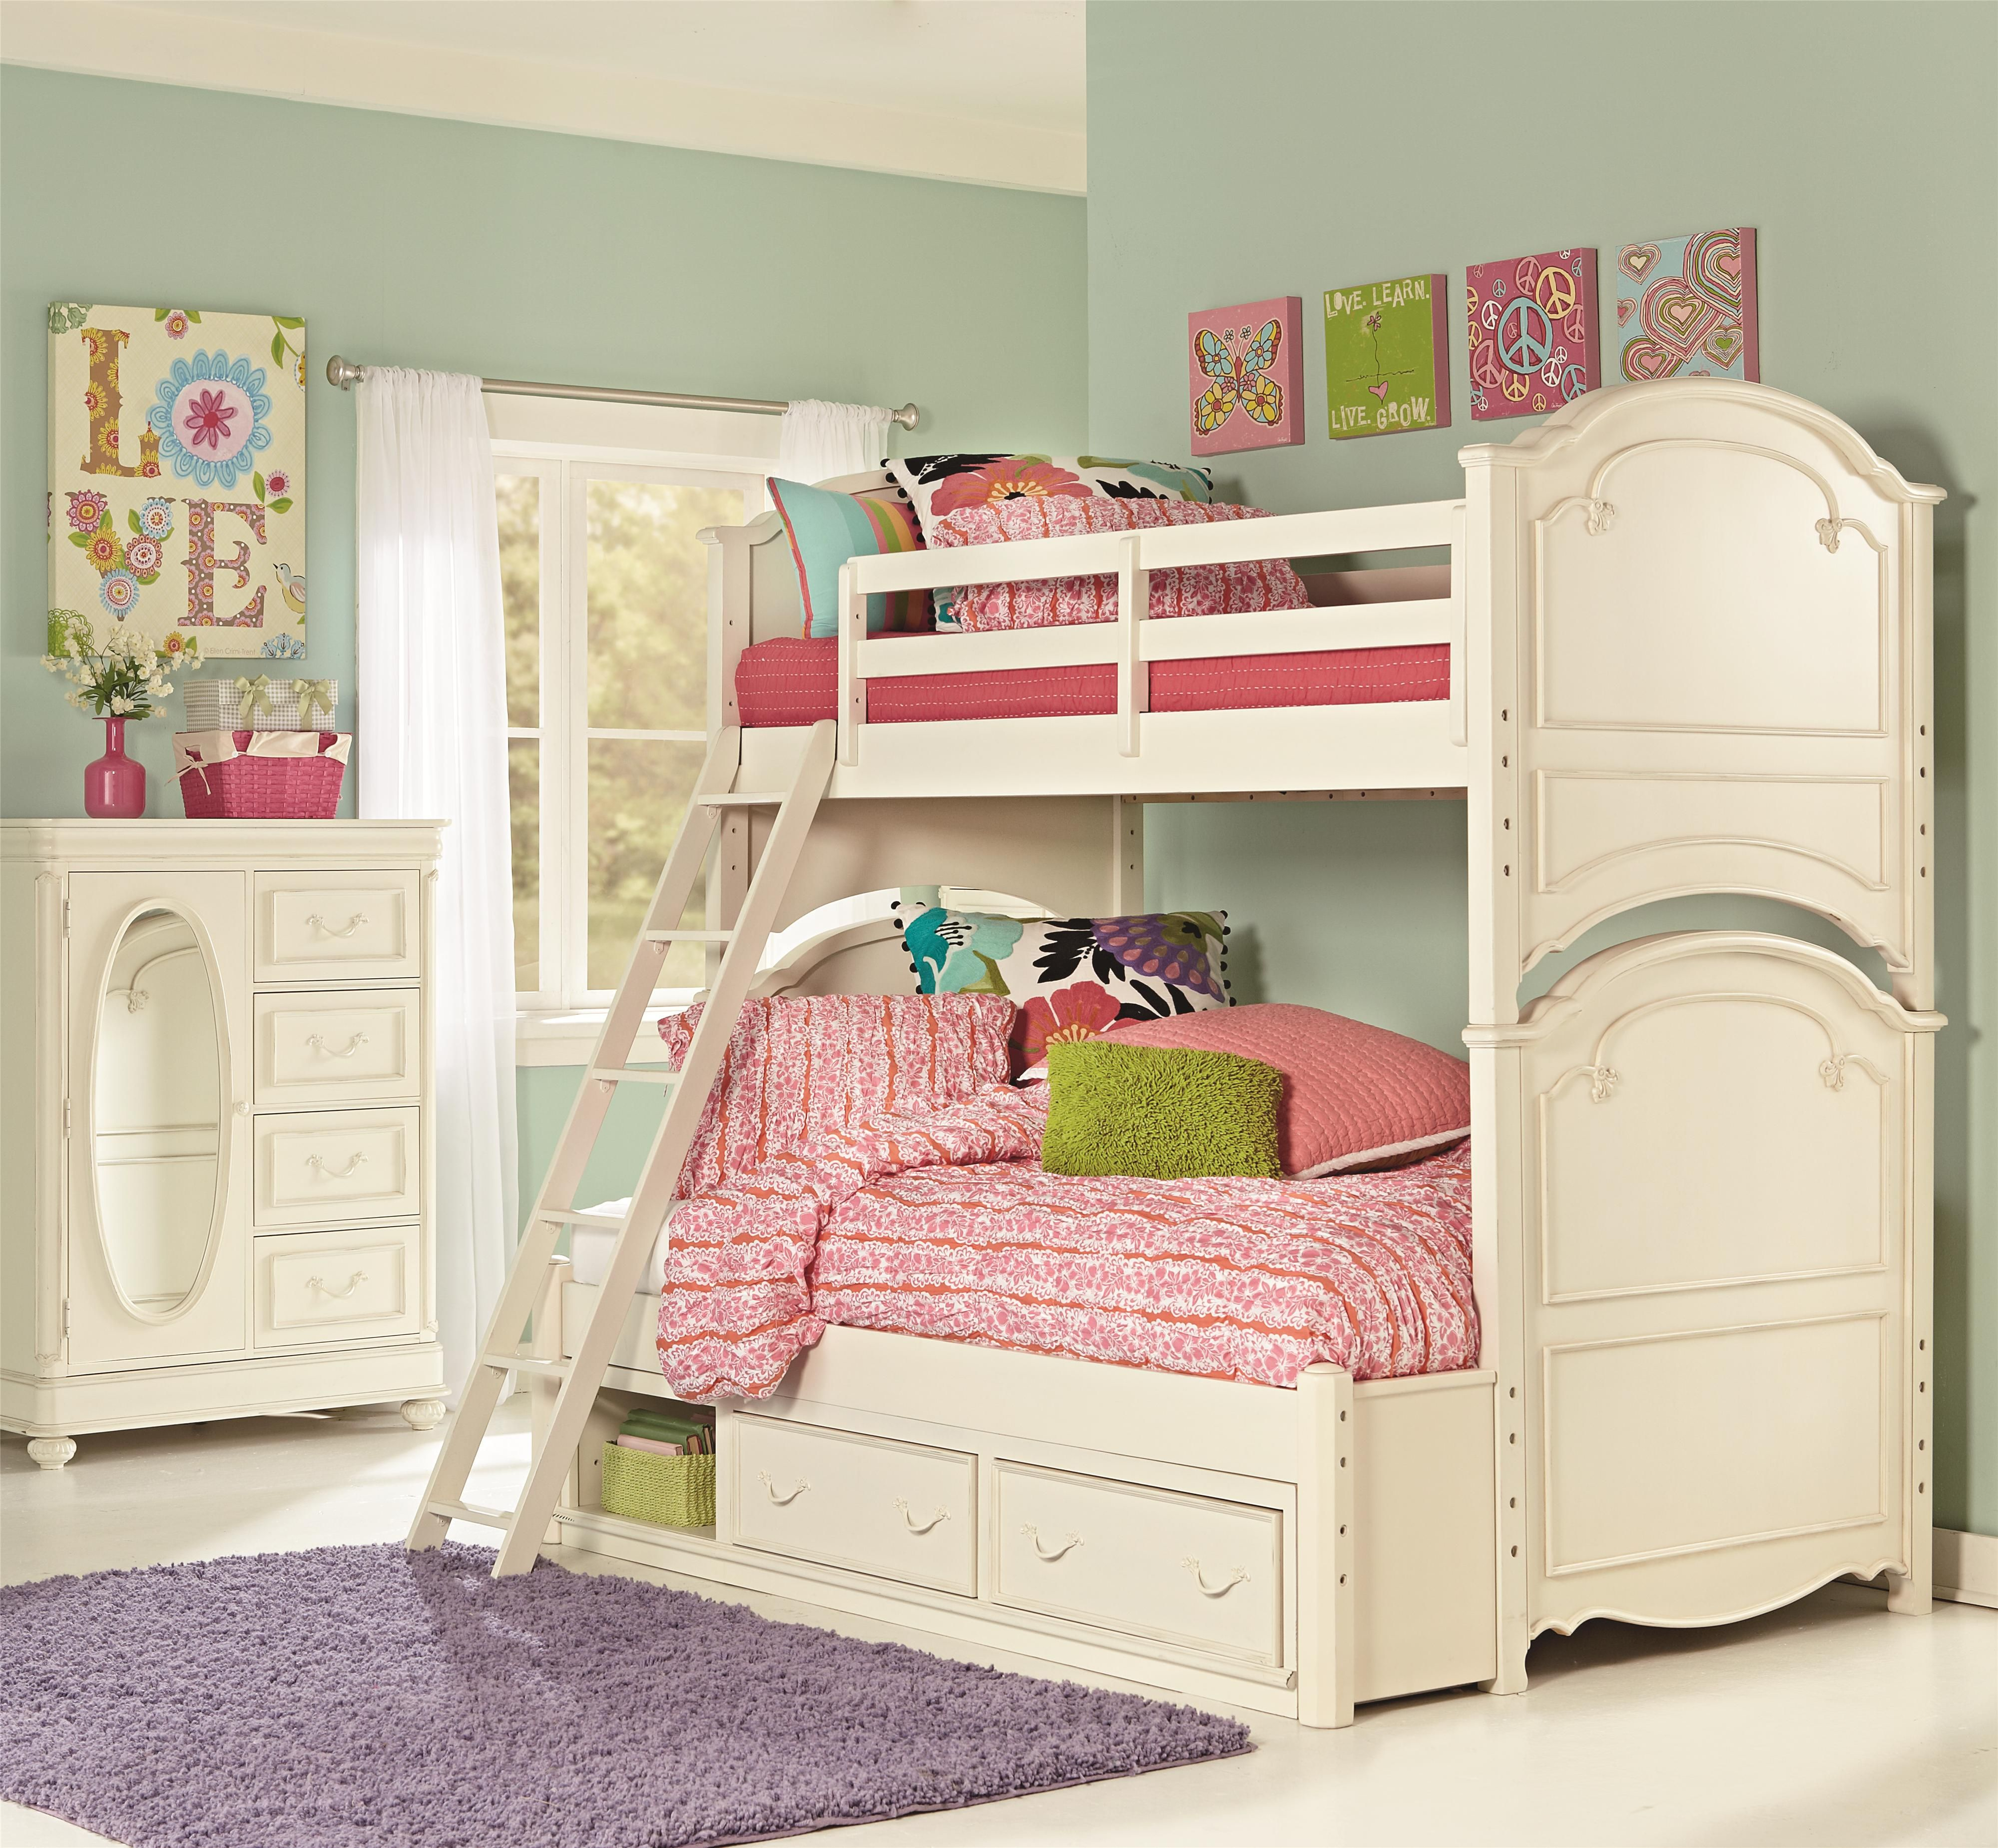 Slumber Party This Bedroom Is Calling For One Girls Bunk Beds Bunk Bed Designs Kids Bunk Beds